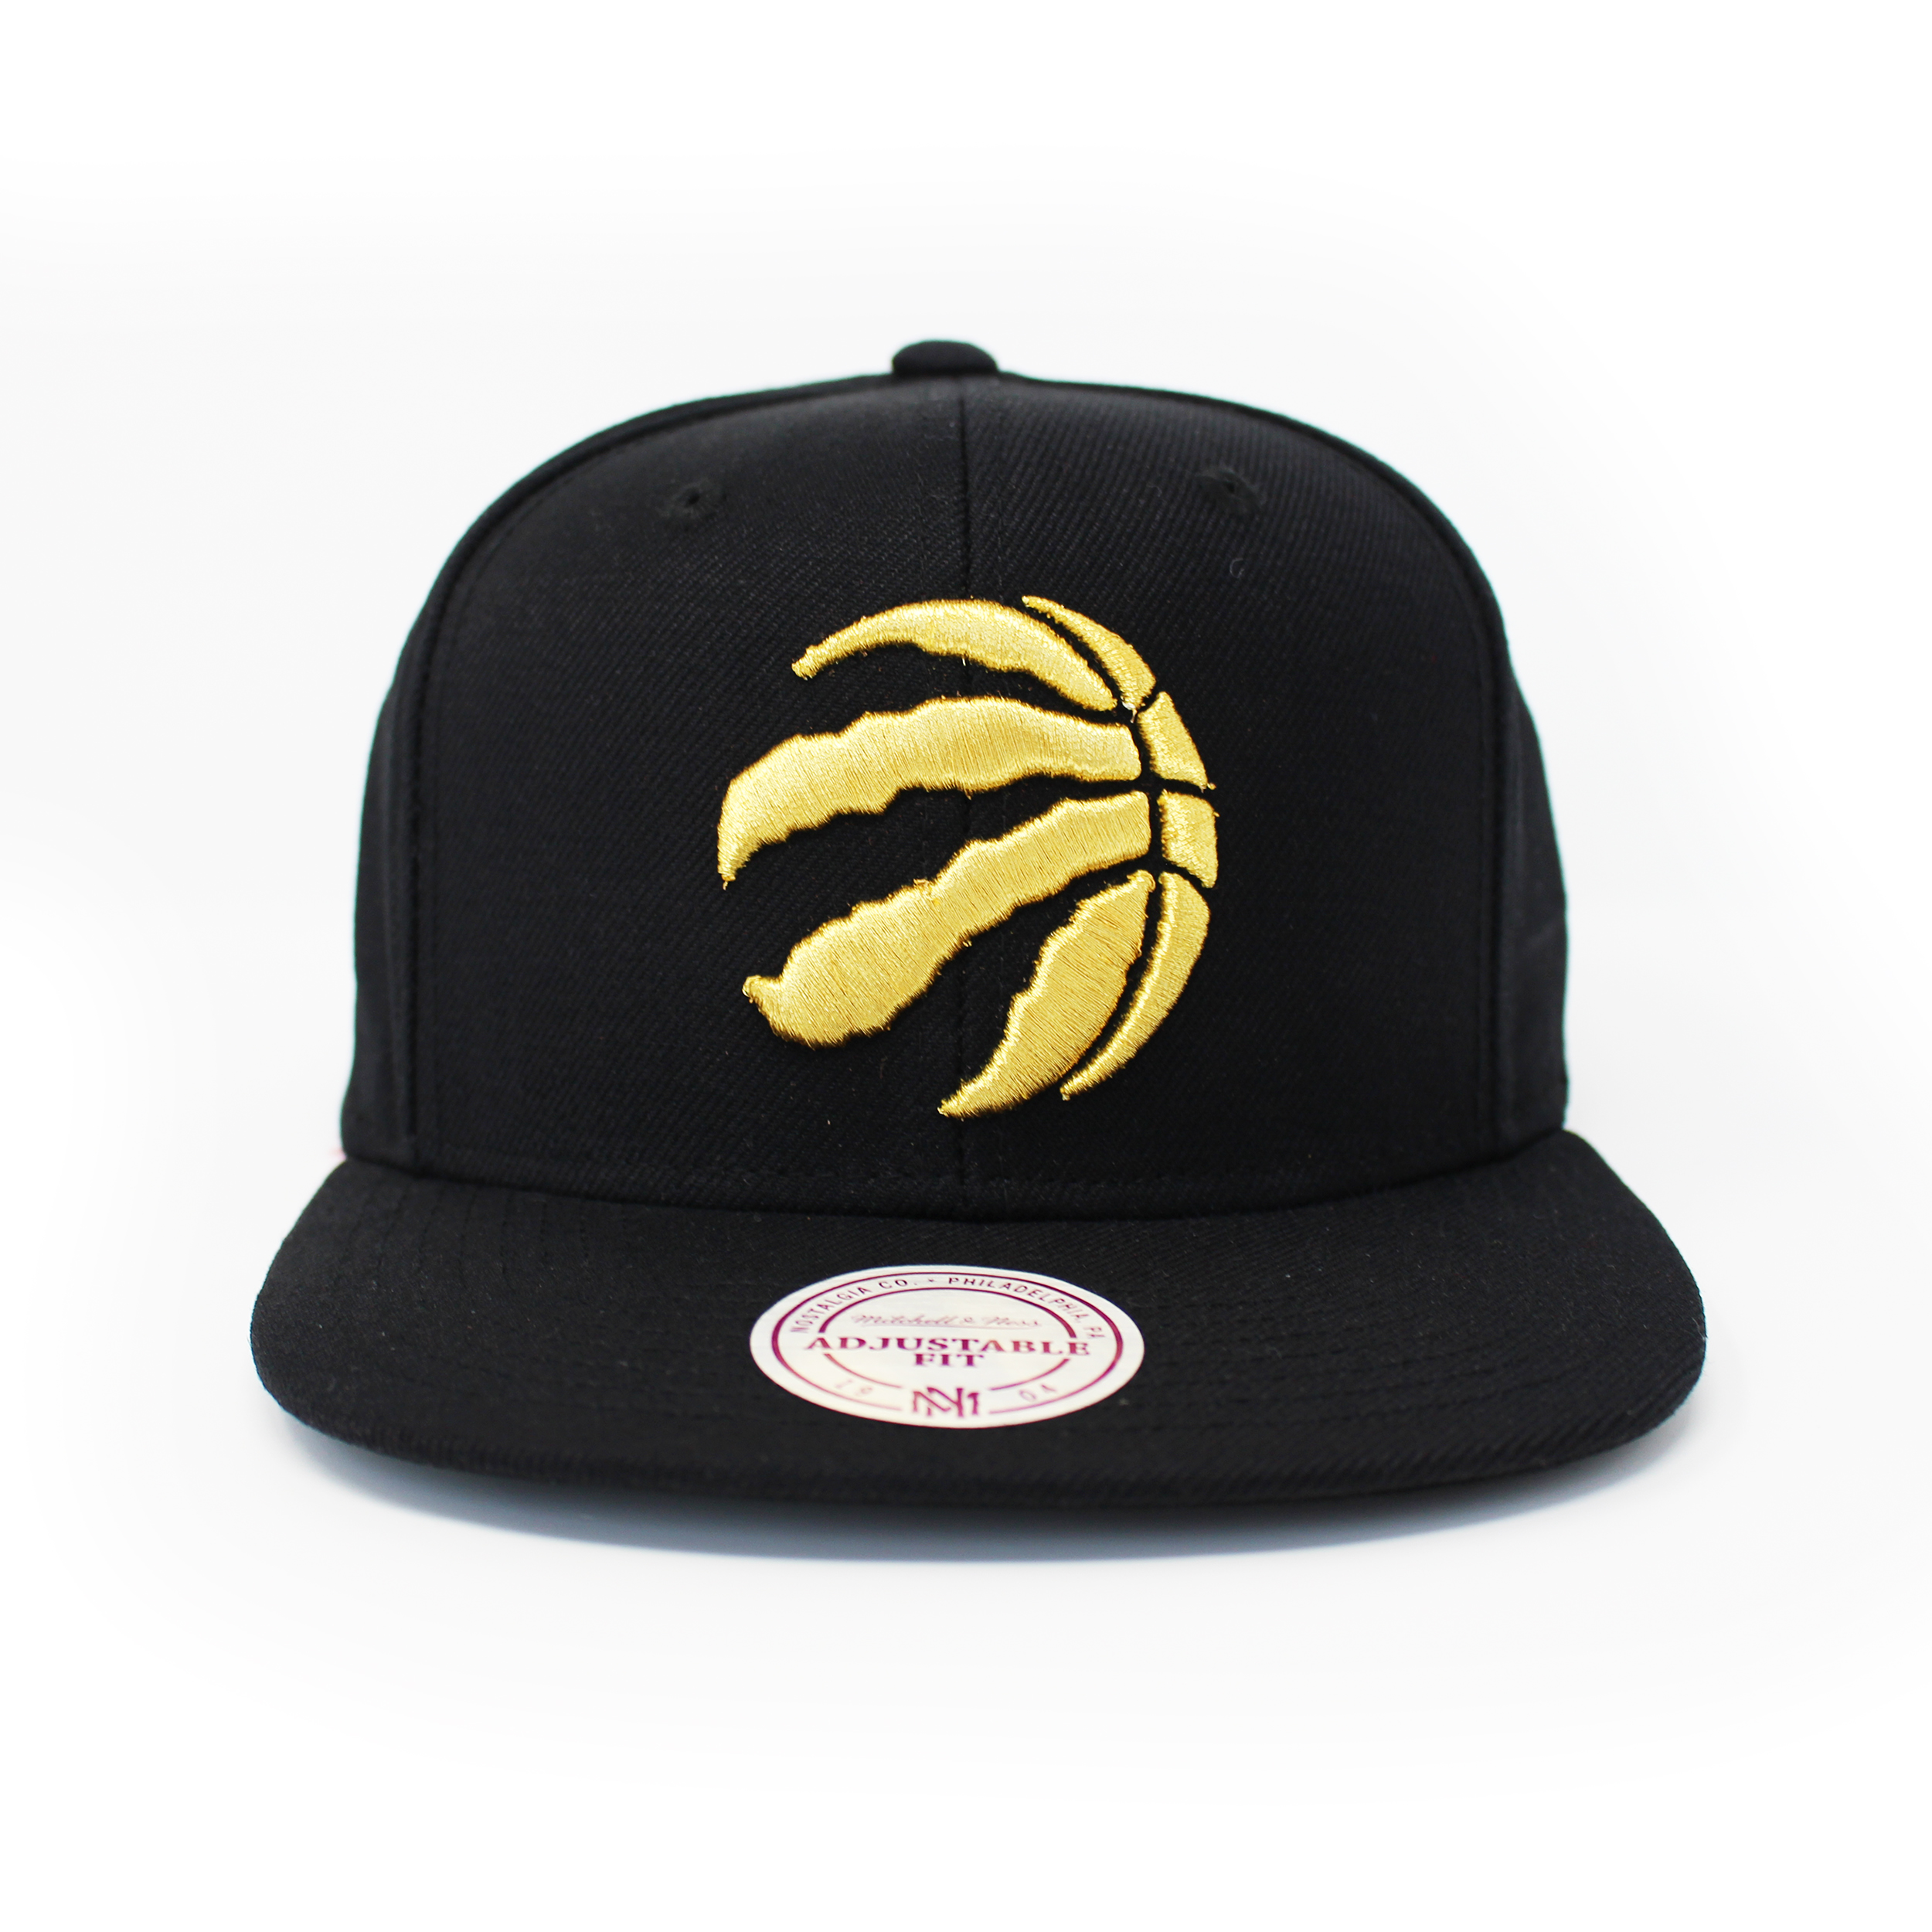 ... sale mitchell and ness toronto raptors gold ball and leaf black gold  snapback hat d4c41 36783 ca6633ae00a